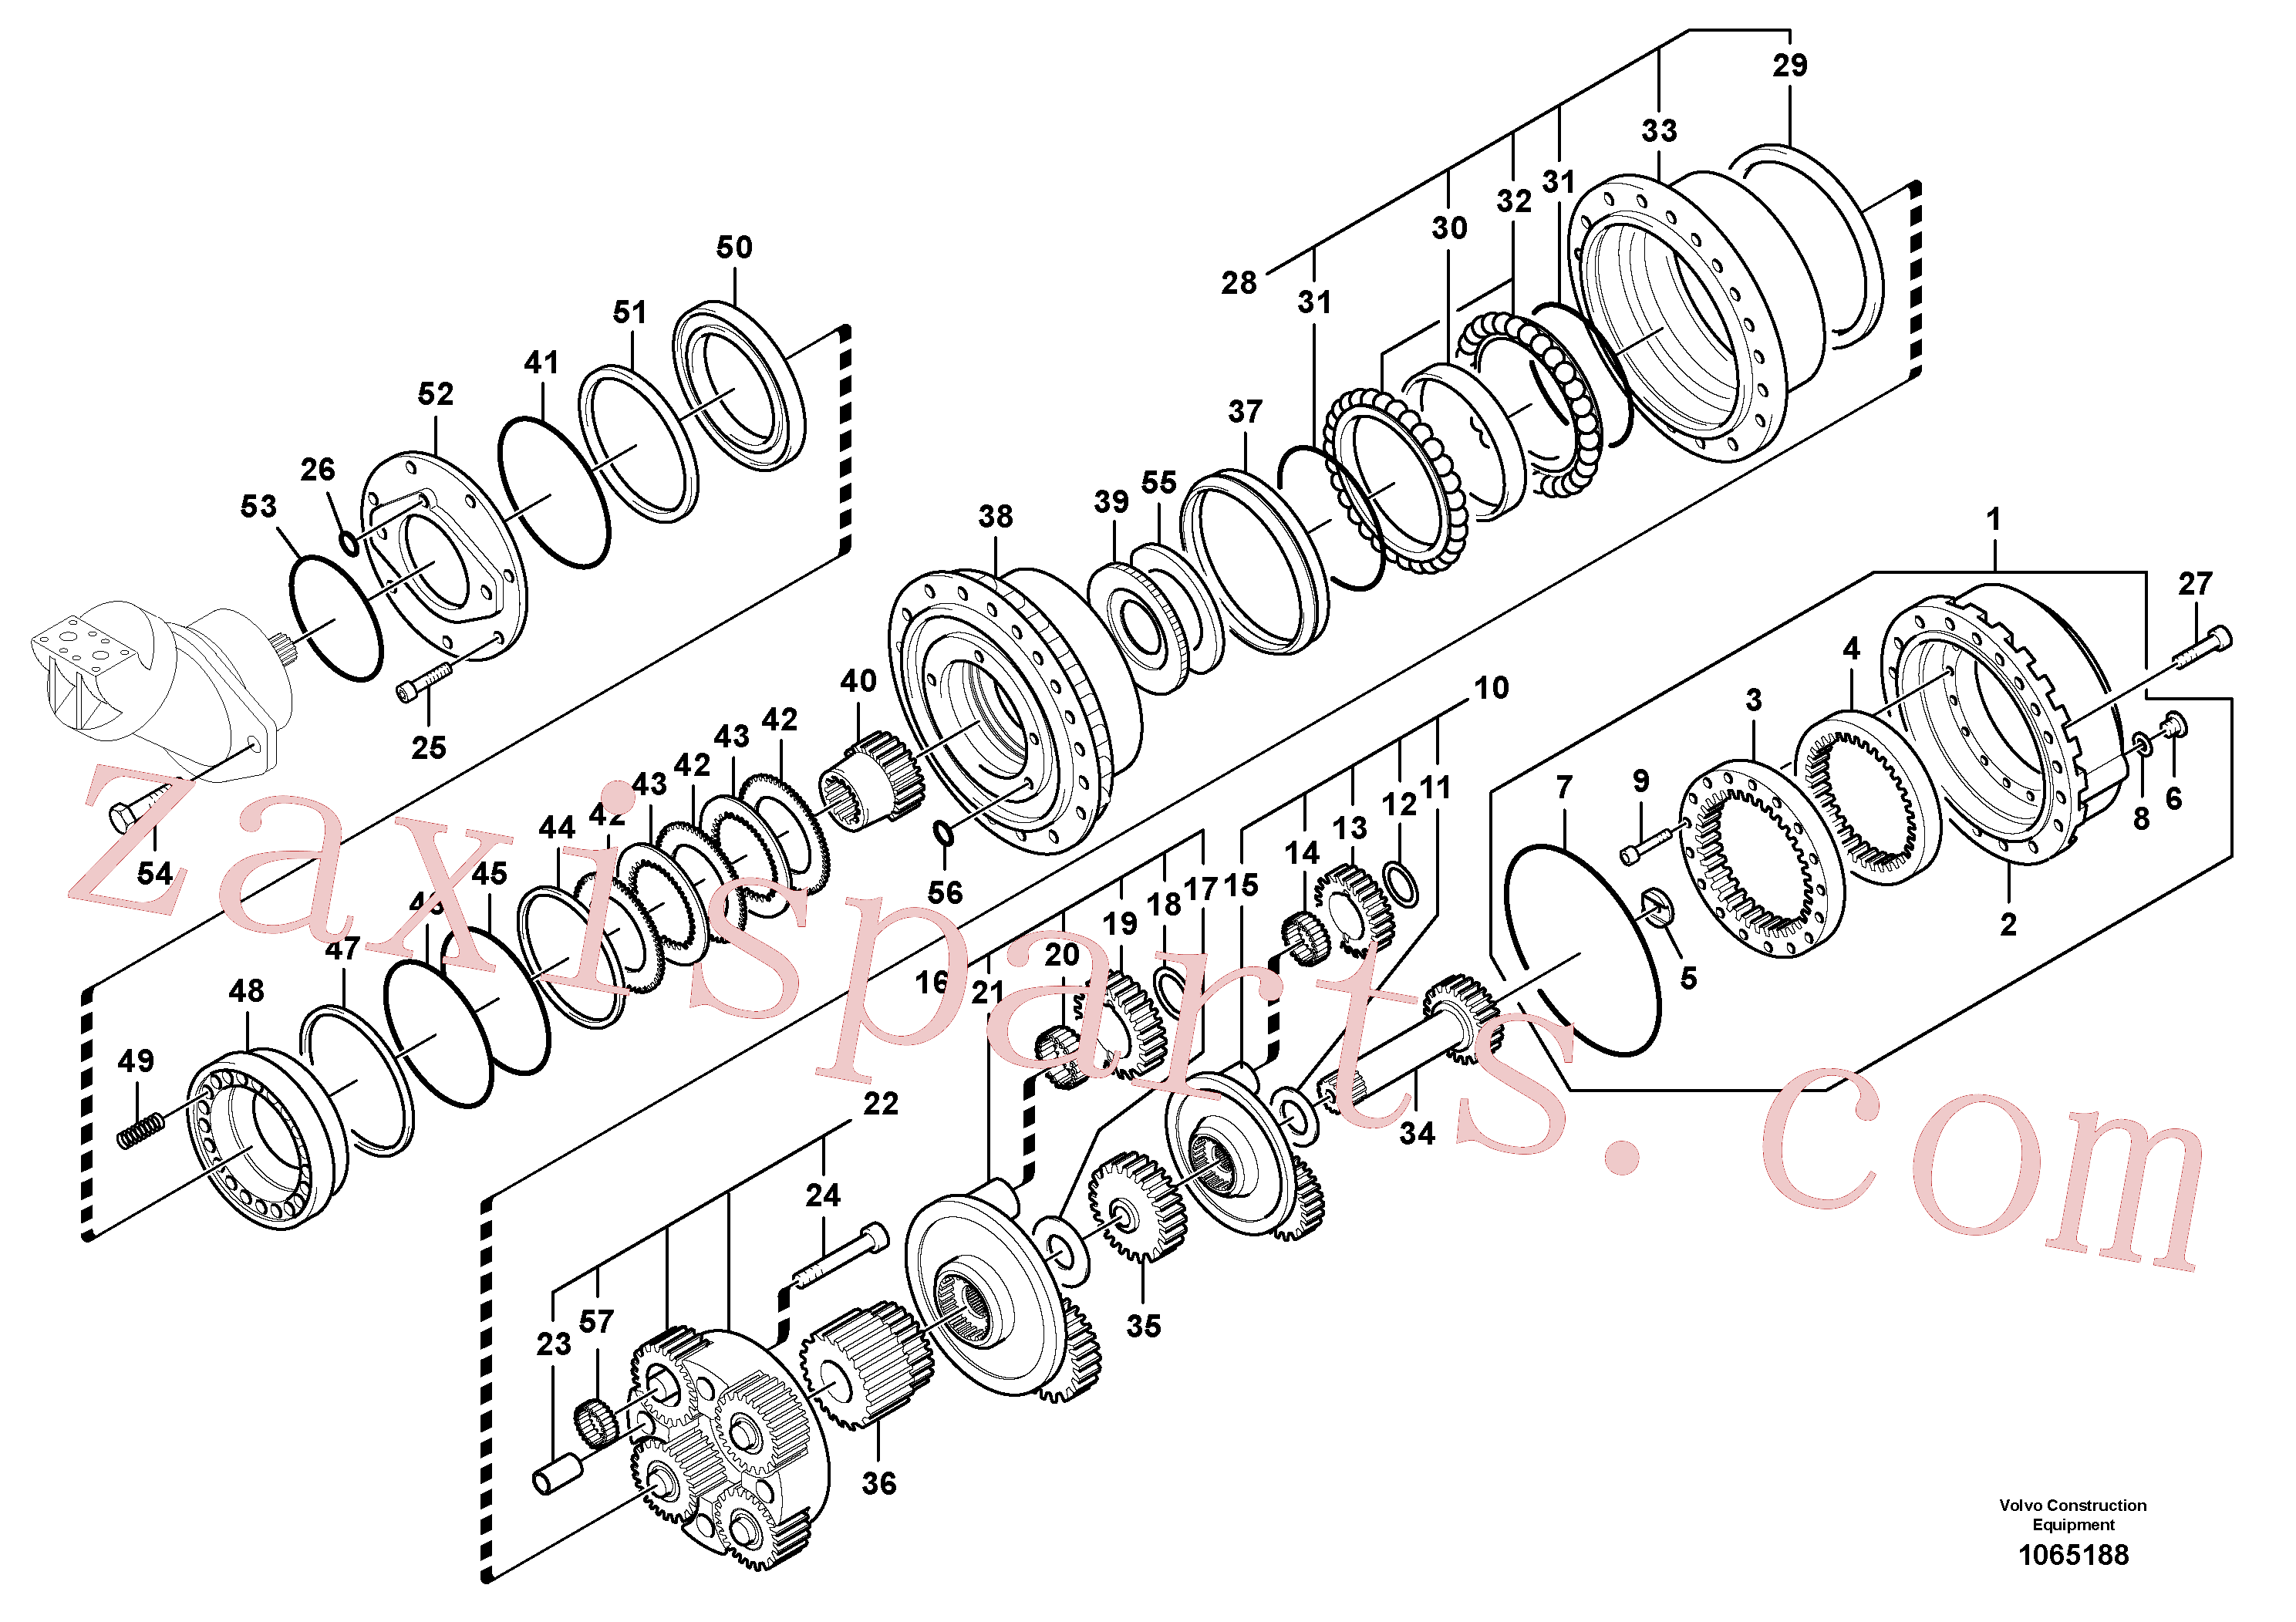 VOE11706895 for Volvo Travel gearbox(1065188 assembly)